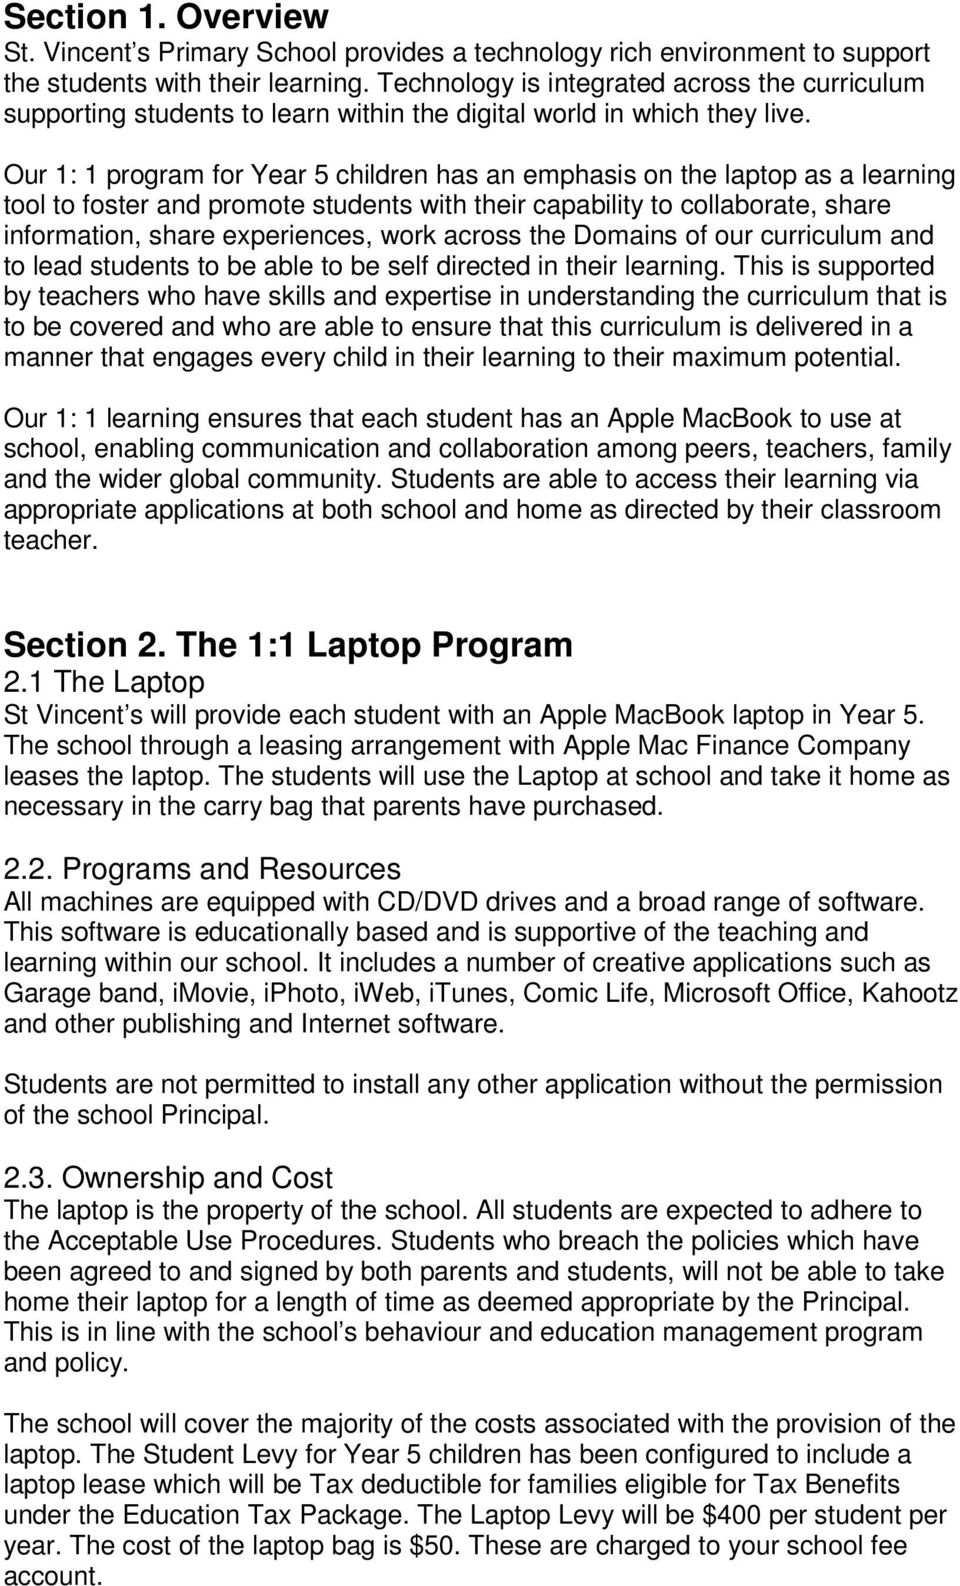 Our 1: 1 program for Year 5 children has an emphasis on the laptop as a learning tool to foster and promote students with their capability to collaborate, share information, share experiences, work